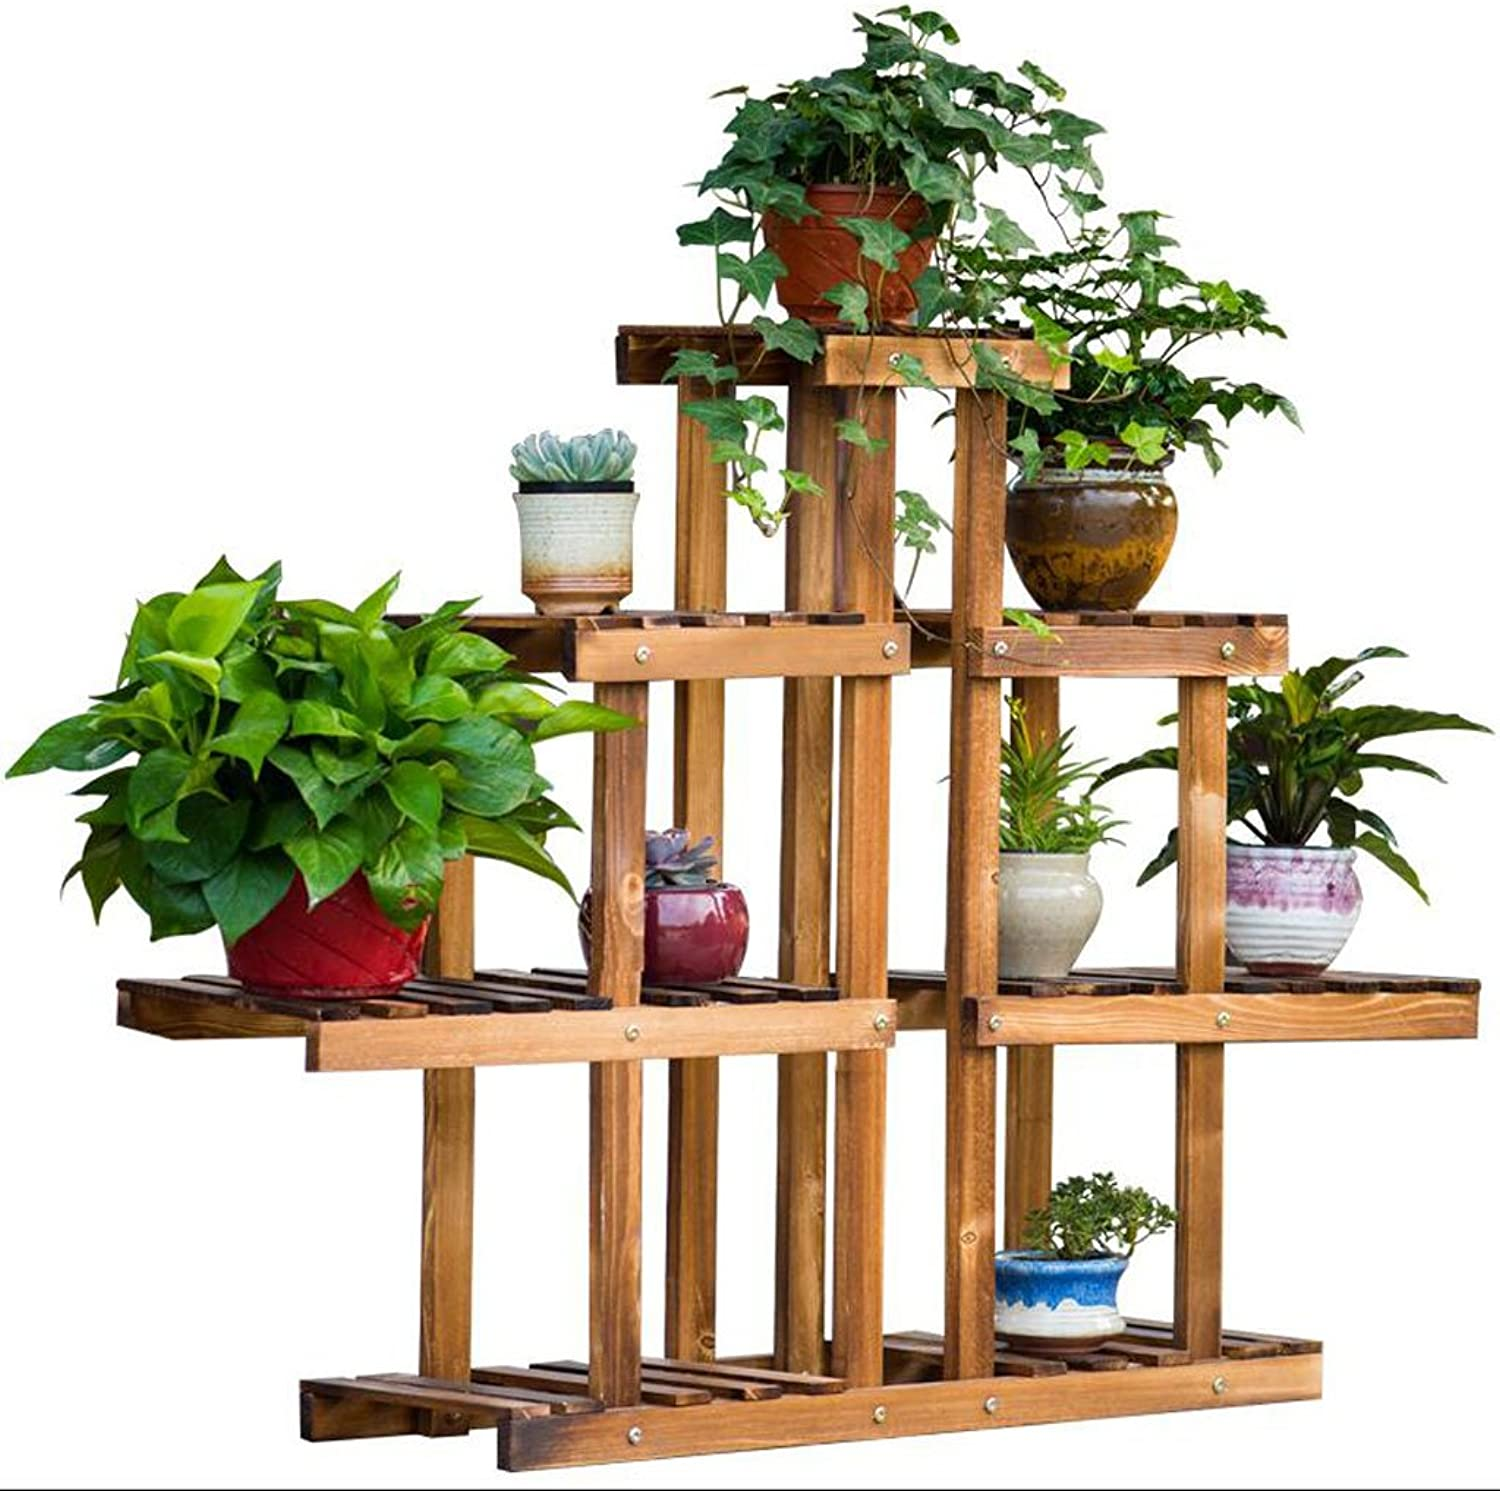 Flower stand Wooden flower stand Multilayer Indoor Balcony flower stand Multi-Purpose Rack Three-Dimensional flower stand